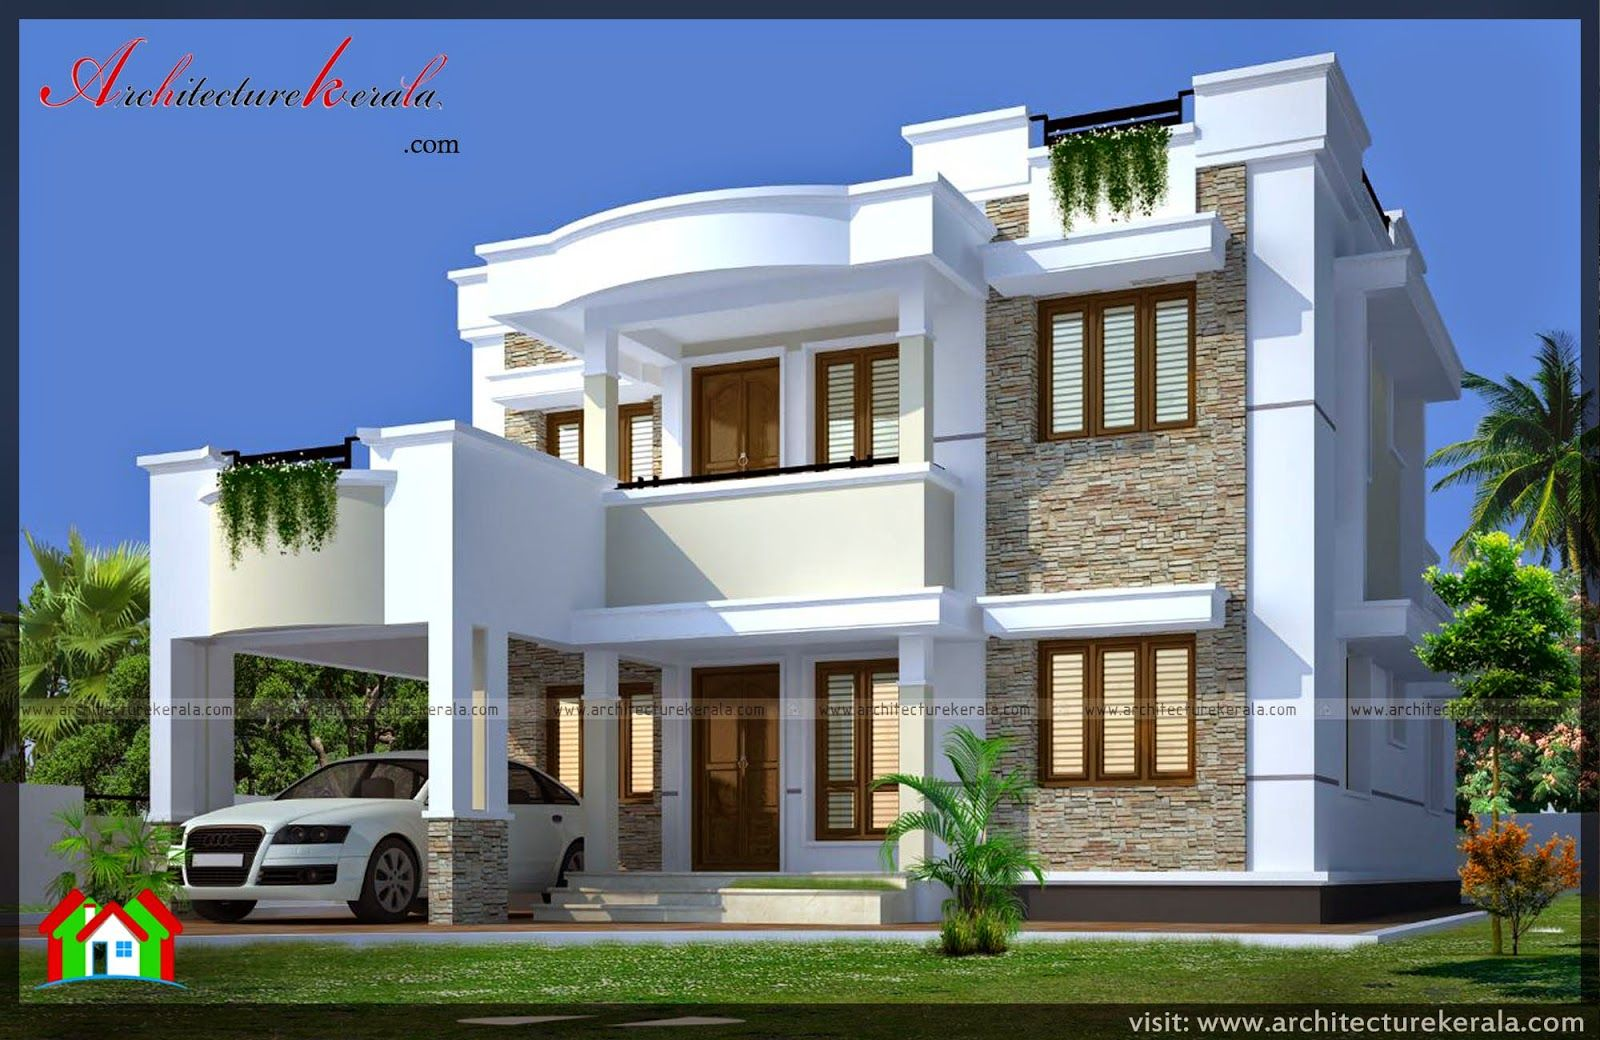 Contemporary Elevation And House Plan Architecture Kerala Model House Plan House Plan Gallery Bungalow House Design